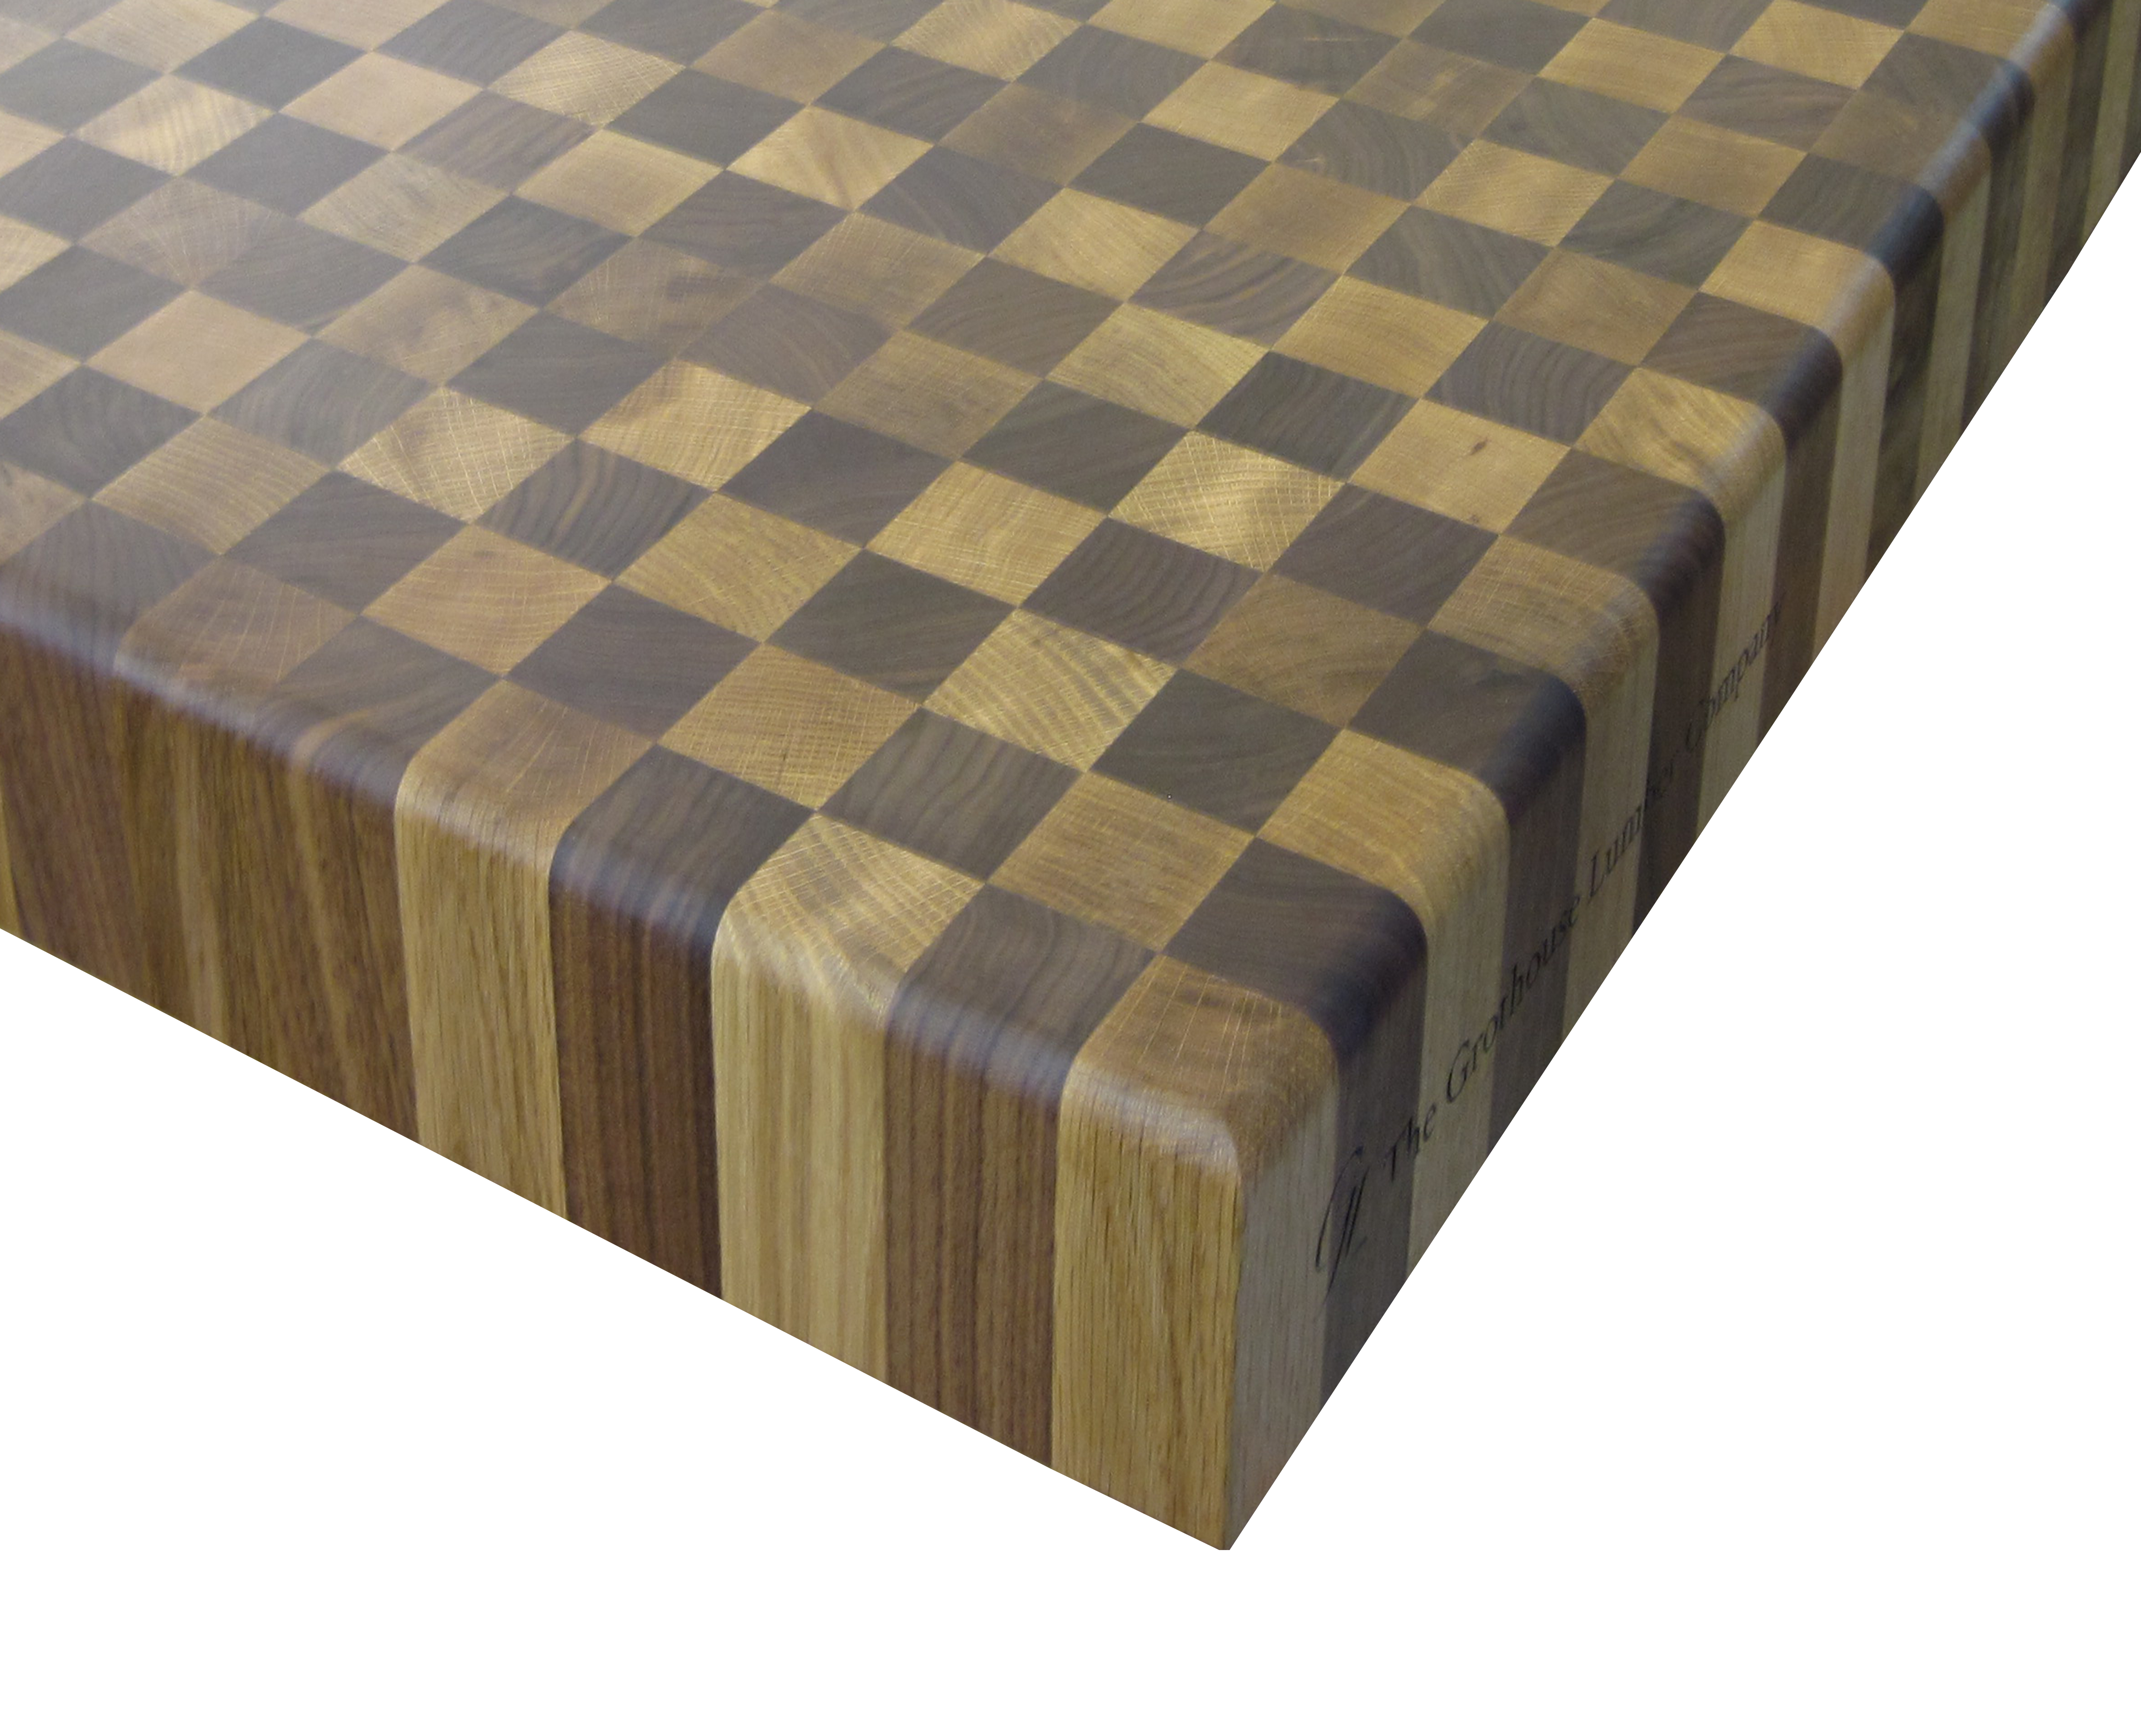 Checkerboard Butcher Blocks by Grothouse